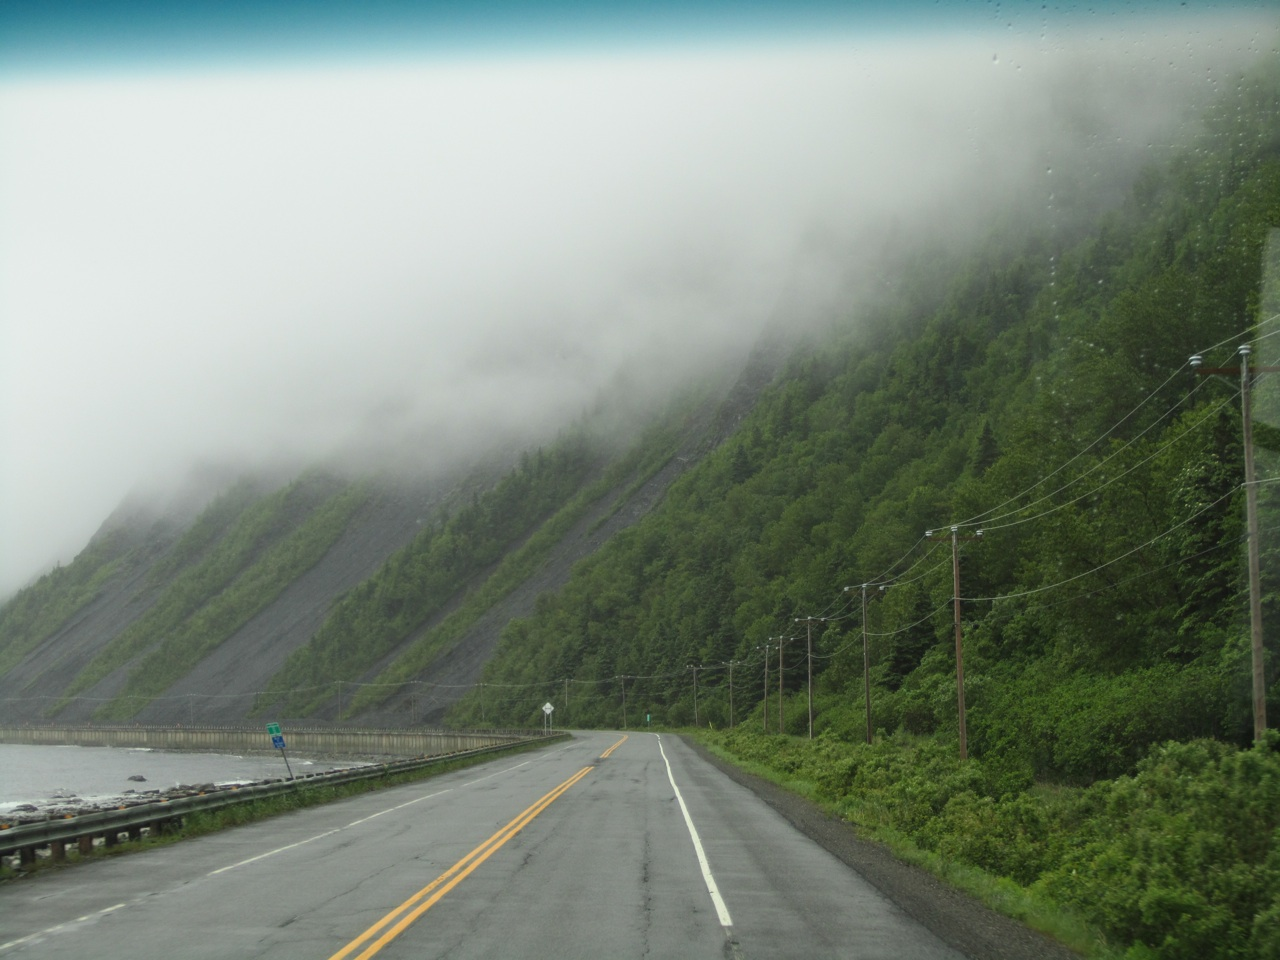 More Foggy Road Between Coastline And Mountains